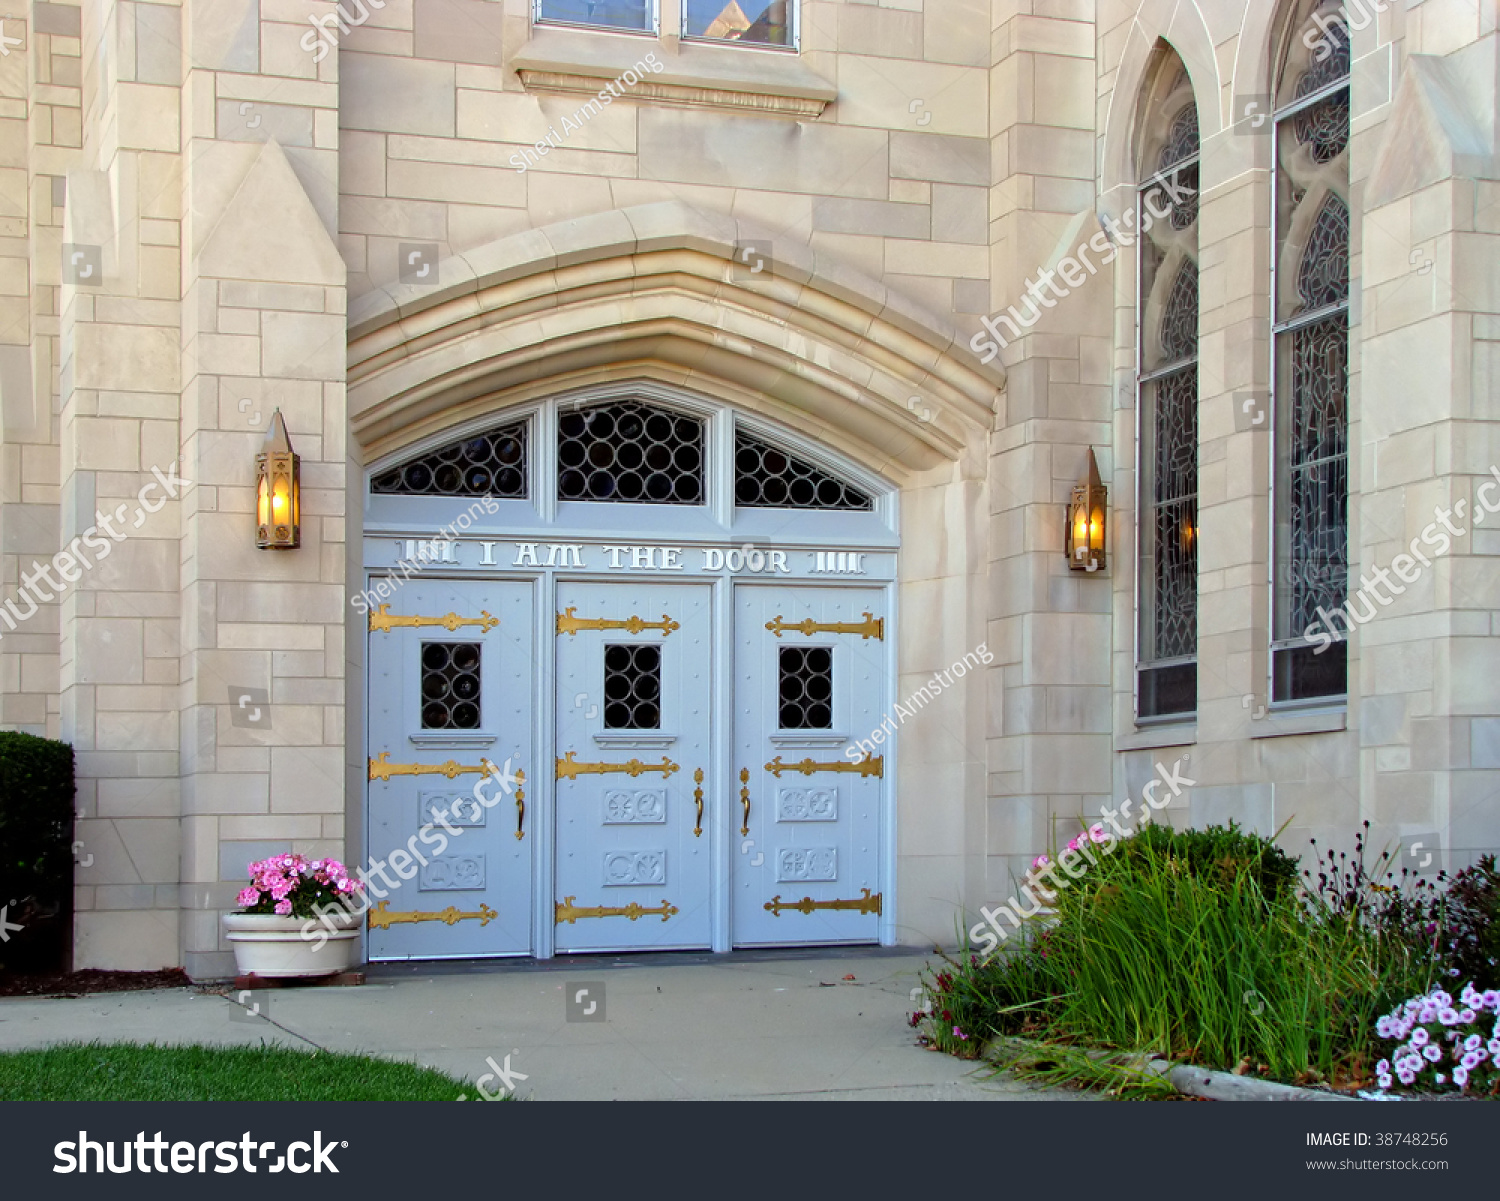 church doors with lighted front entrance  I am the ... & Church Doors Lighted Front Entrance I Stock Photo 38748256 ... pezcame.com